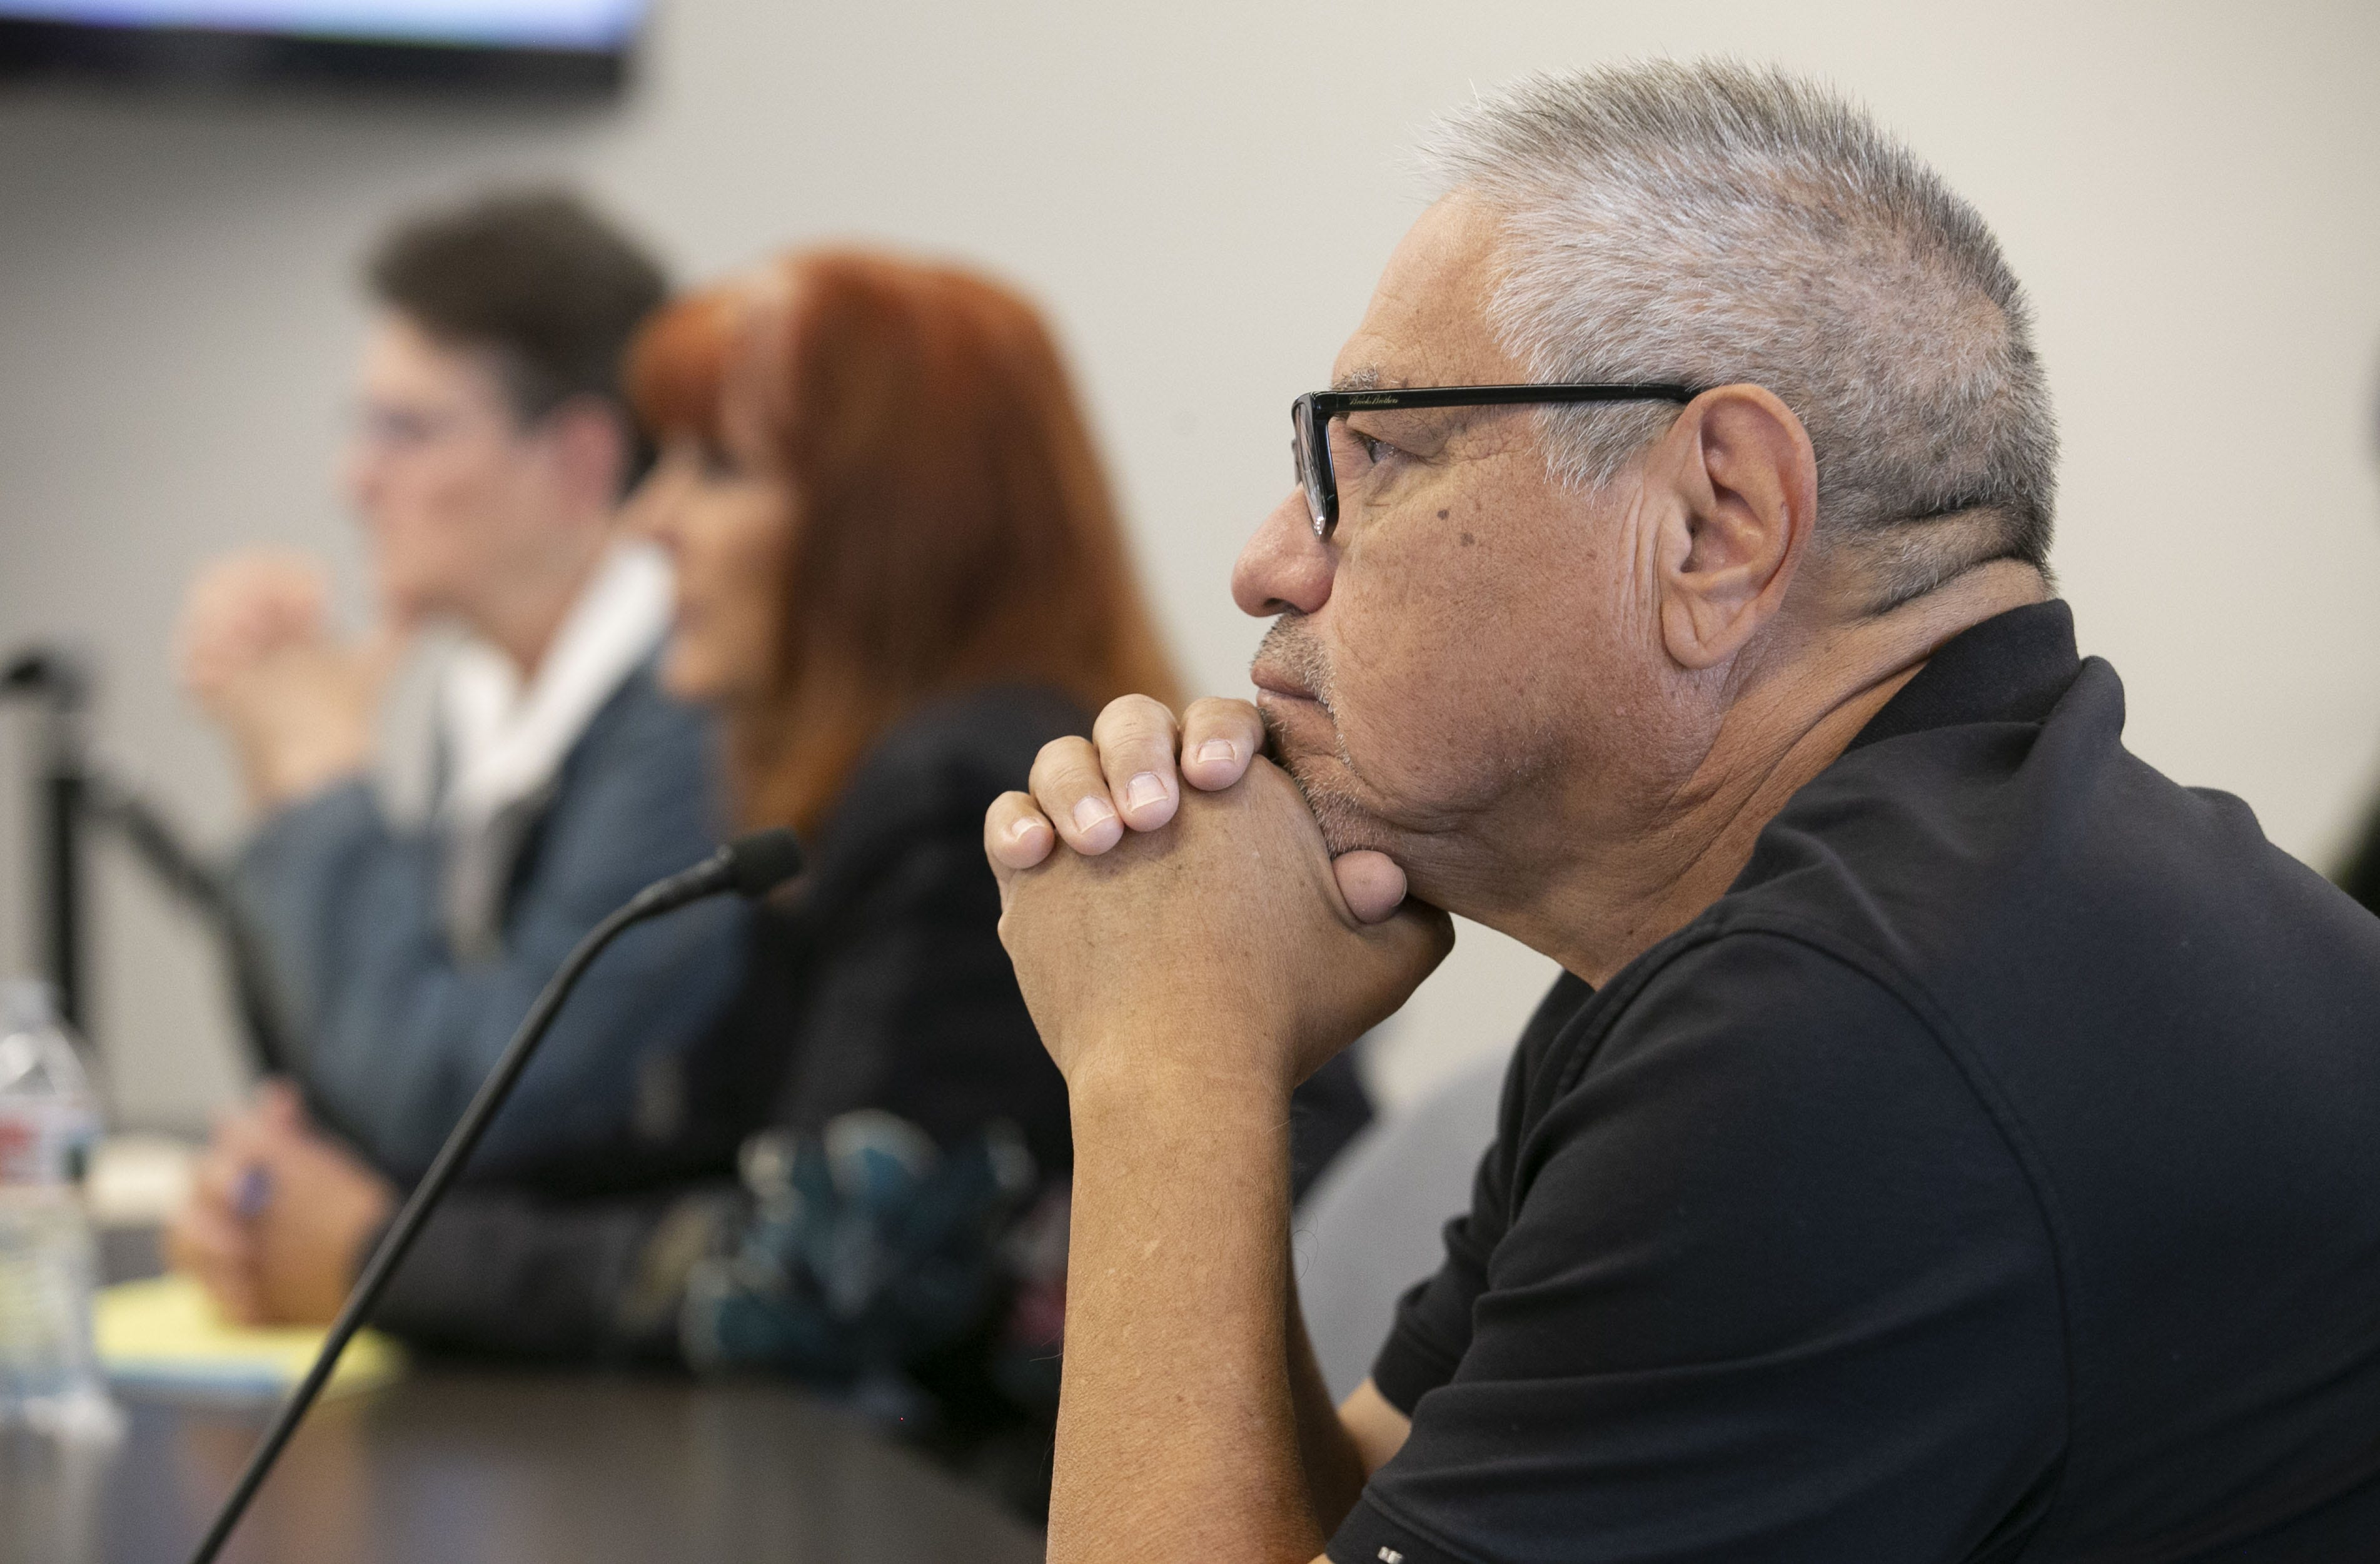 John Ortega, a member of the Arizona State Board of Massage Therapy, listens during a public board meeting on Jan. 31, 2020.